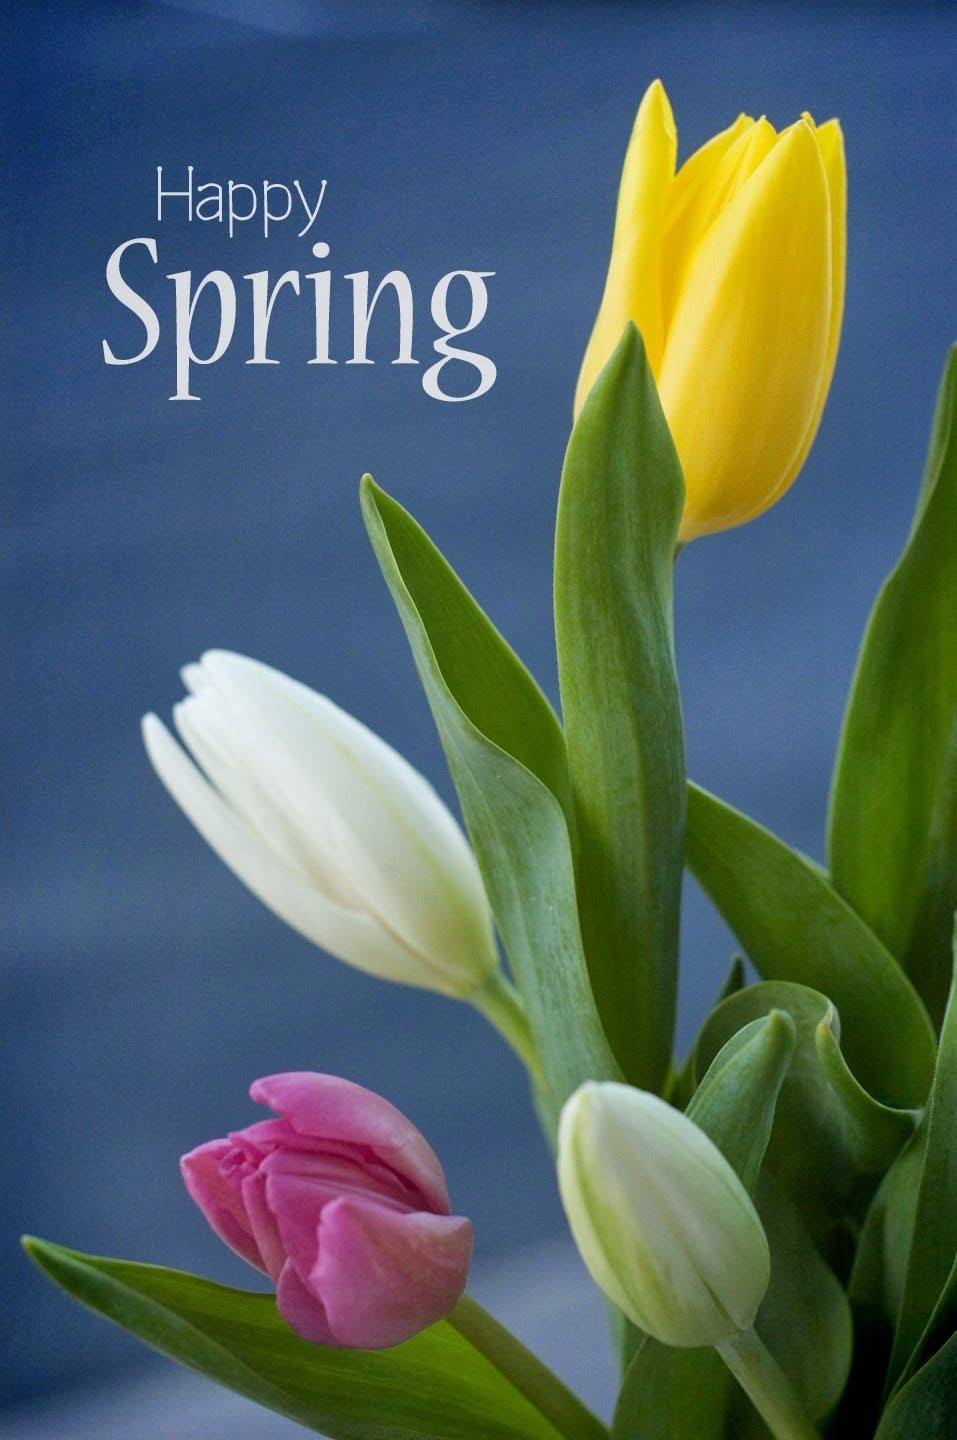 Happy Spring Pictures, Photos, and Images for Facebook ...